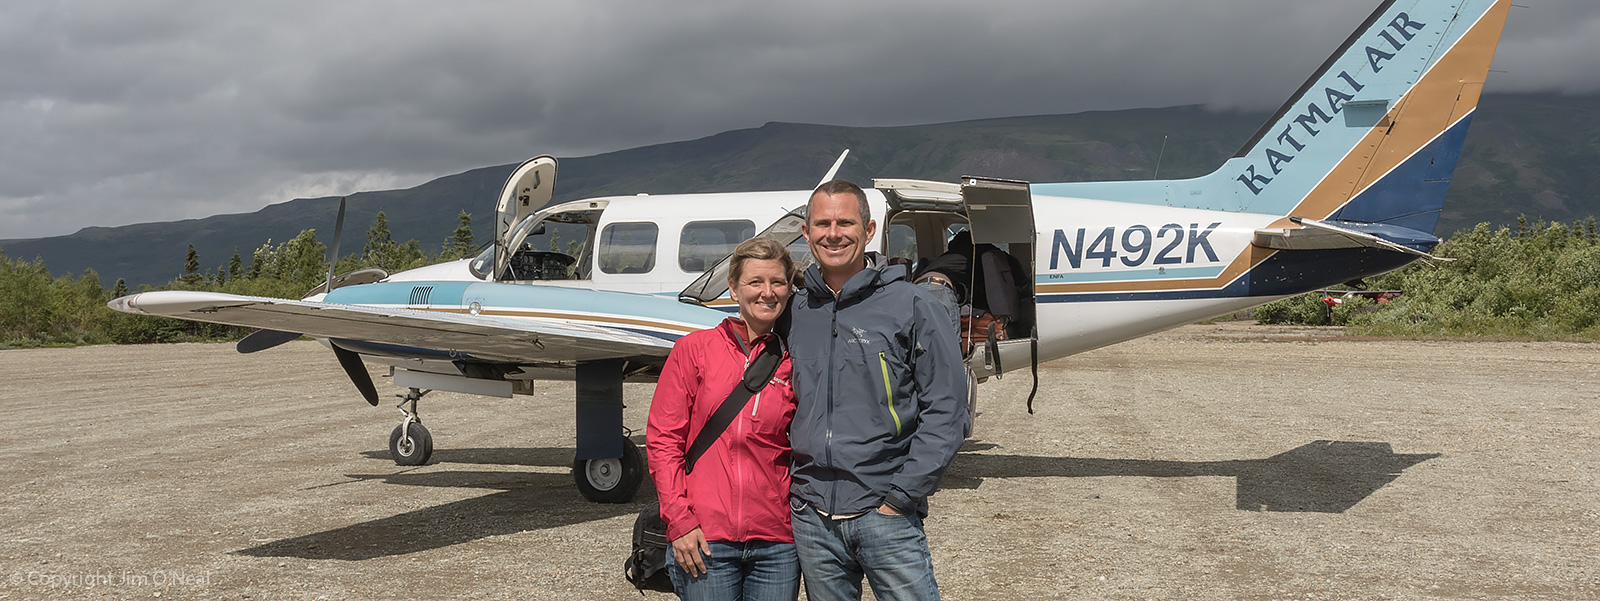 Boarding a Bush Plane to Katmai, Alaska